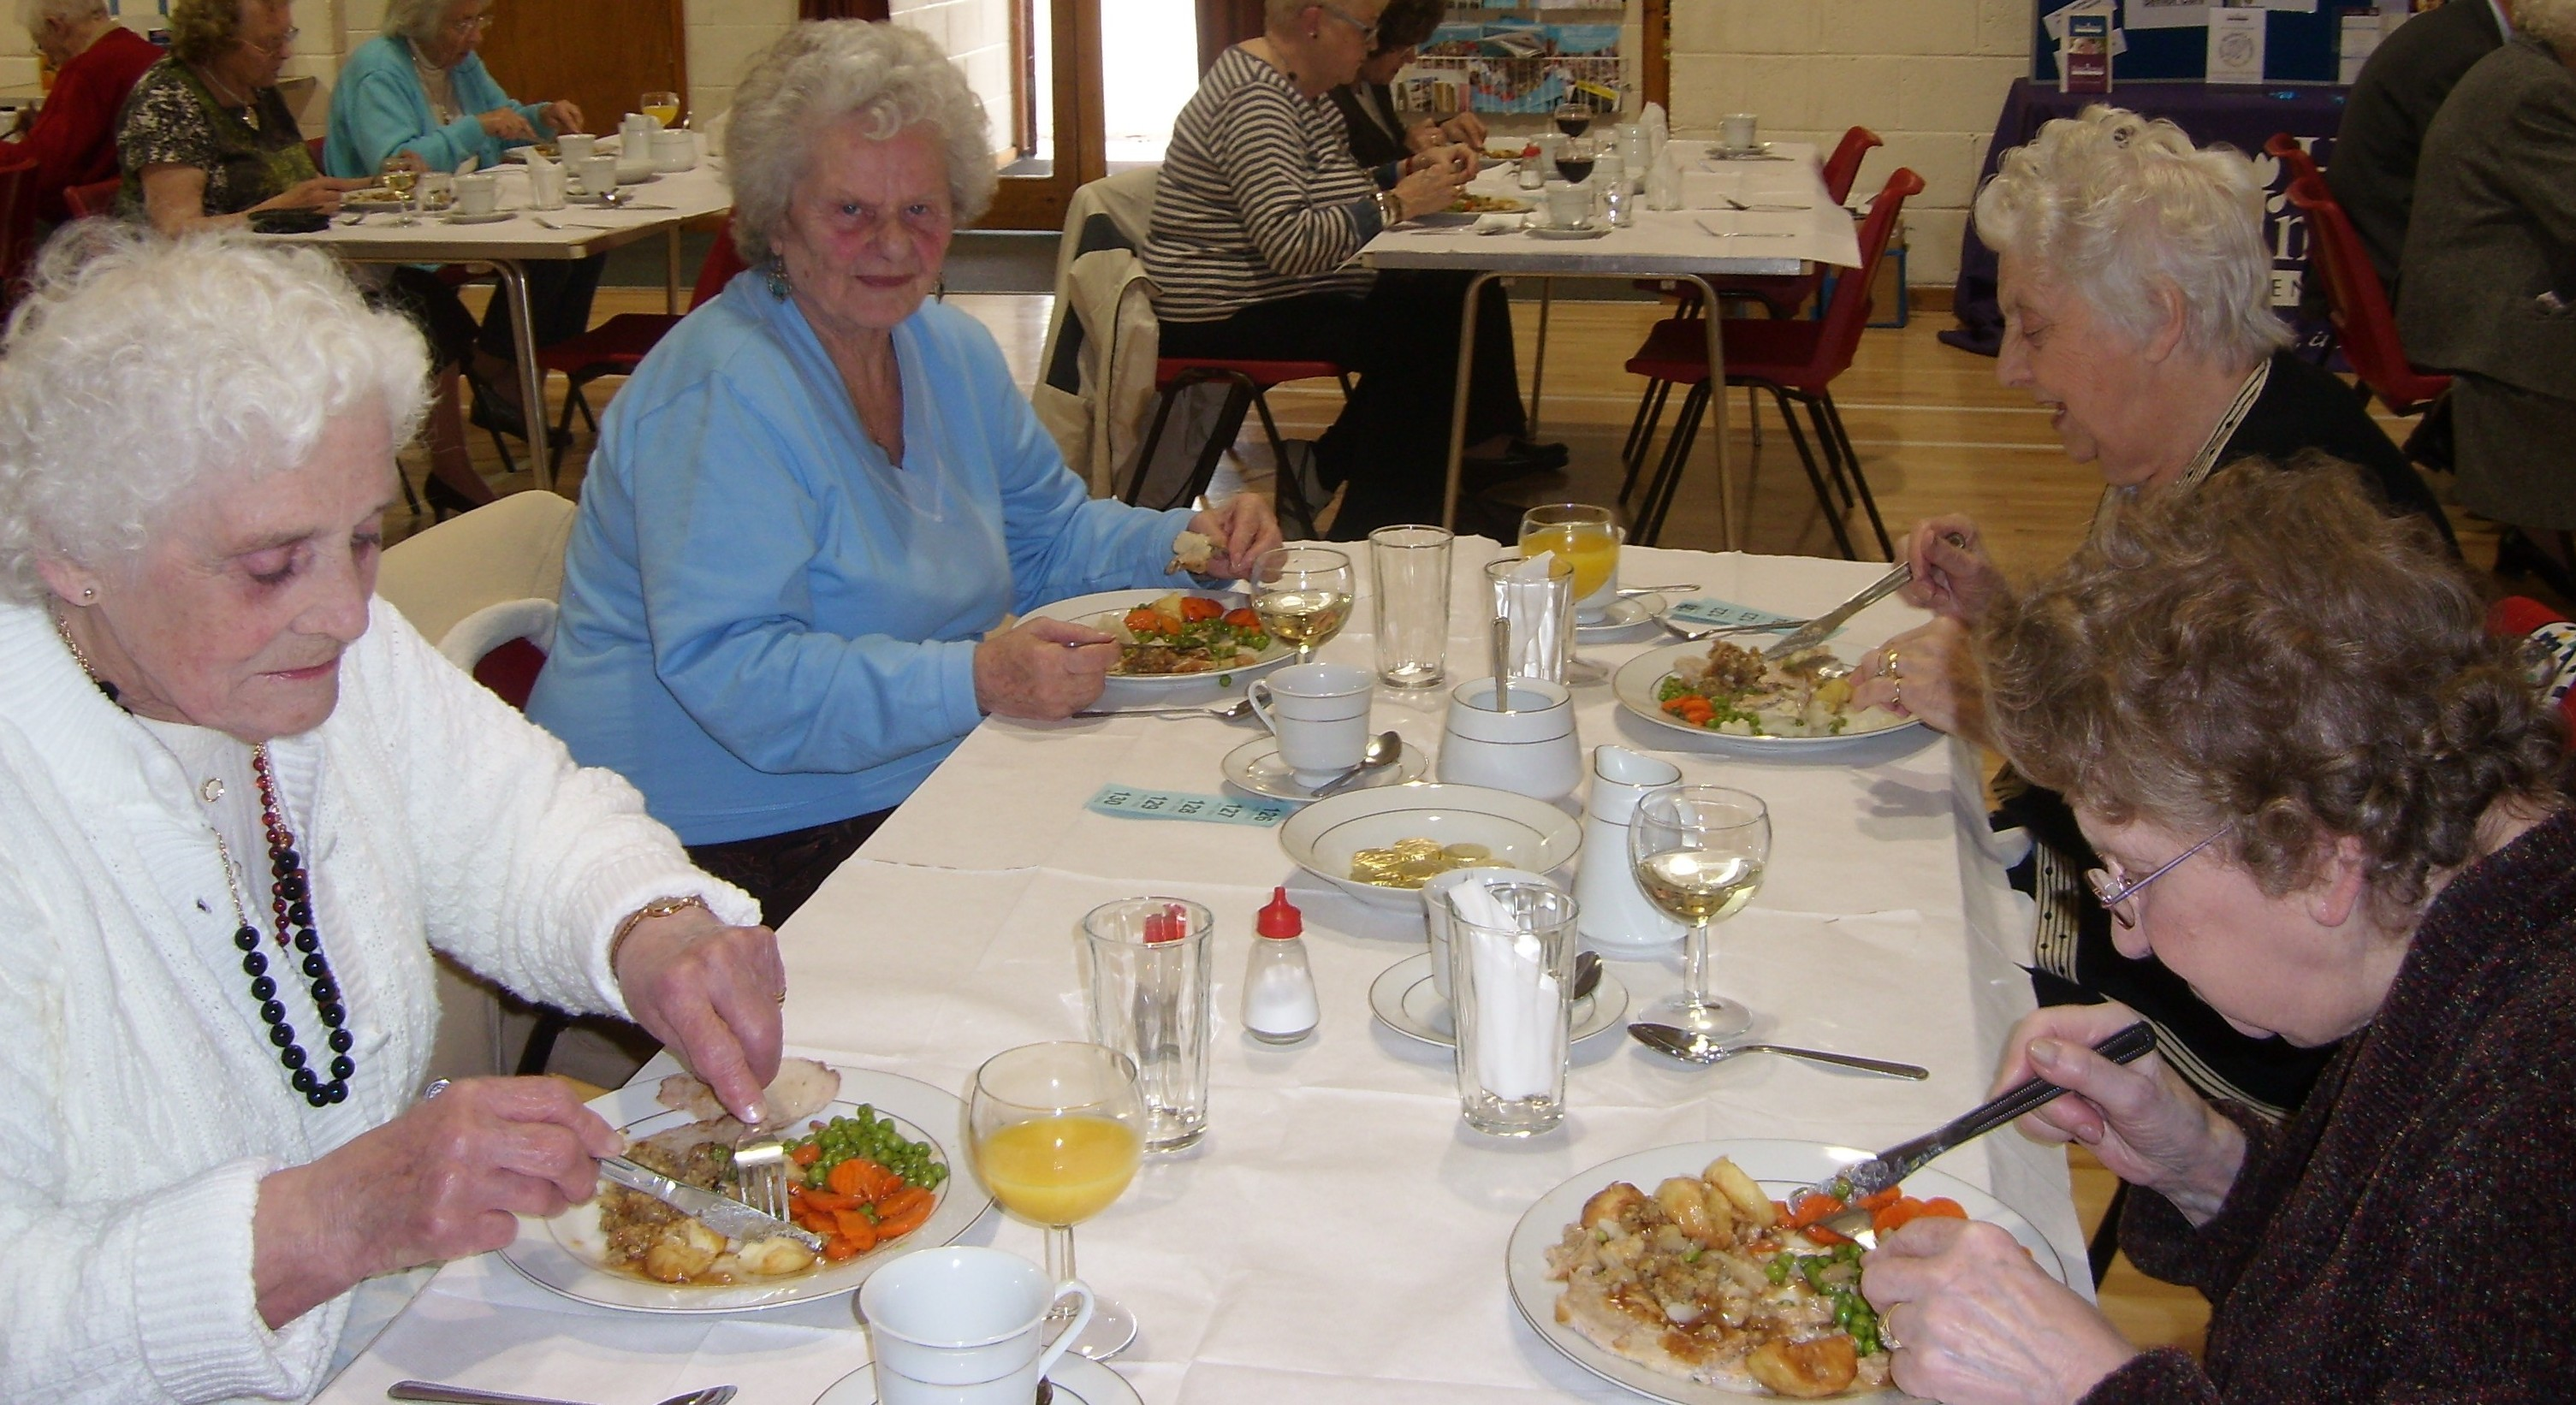 26 elderly guest from at the roast dinner organized by Home Instead Senior Care on the launch of their East Thrisk franchise